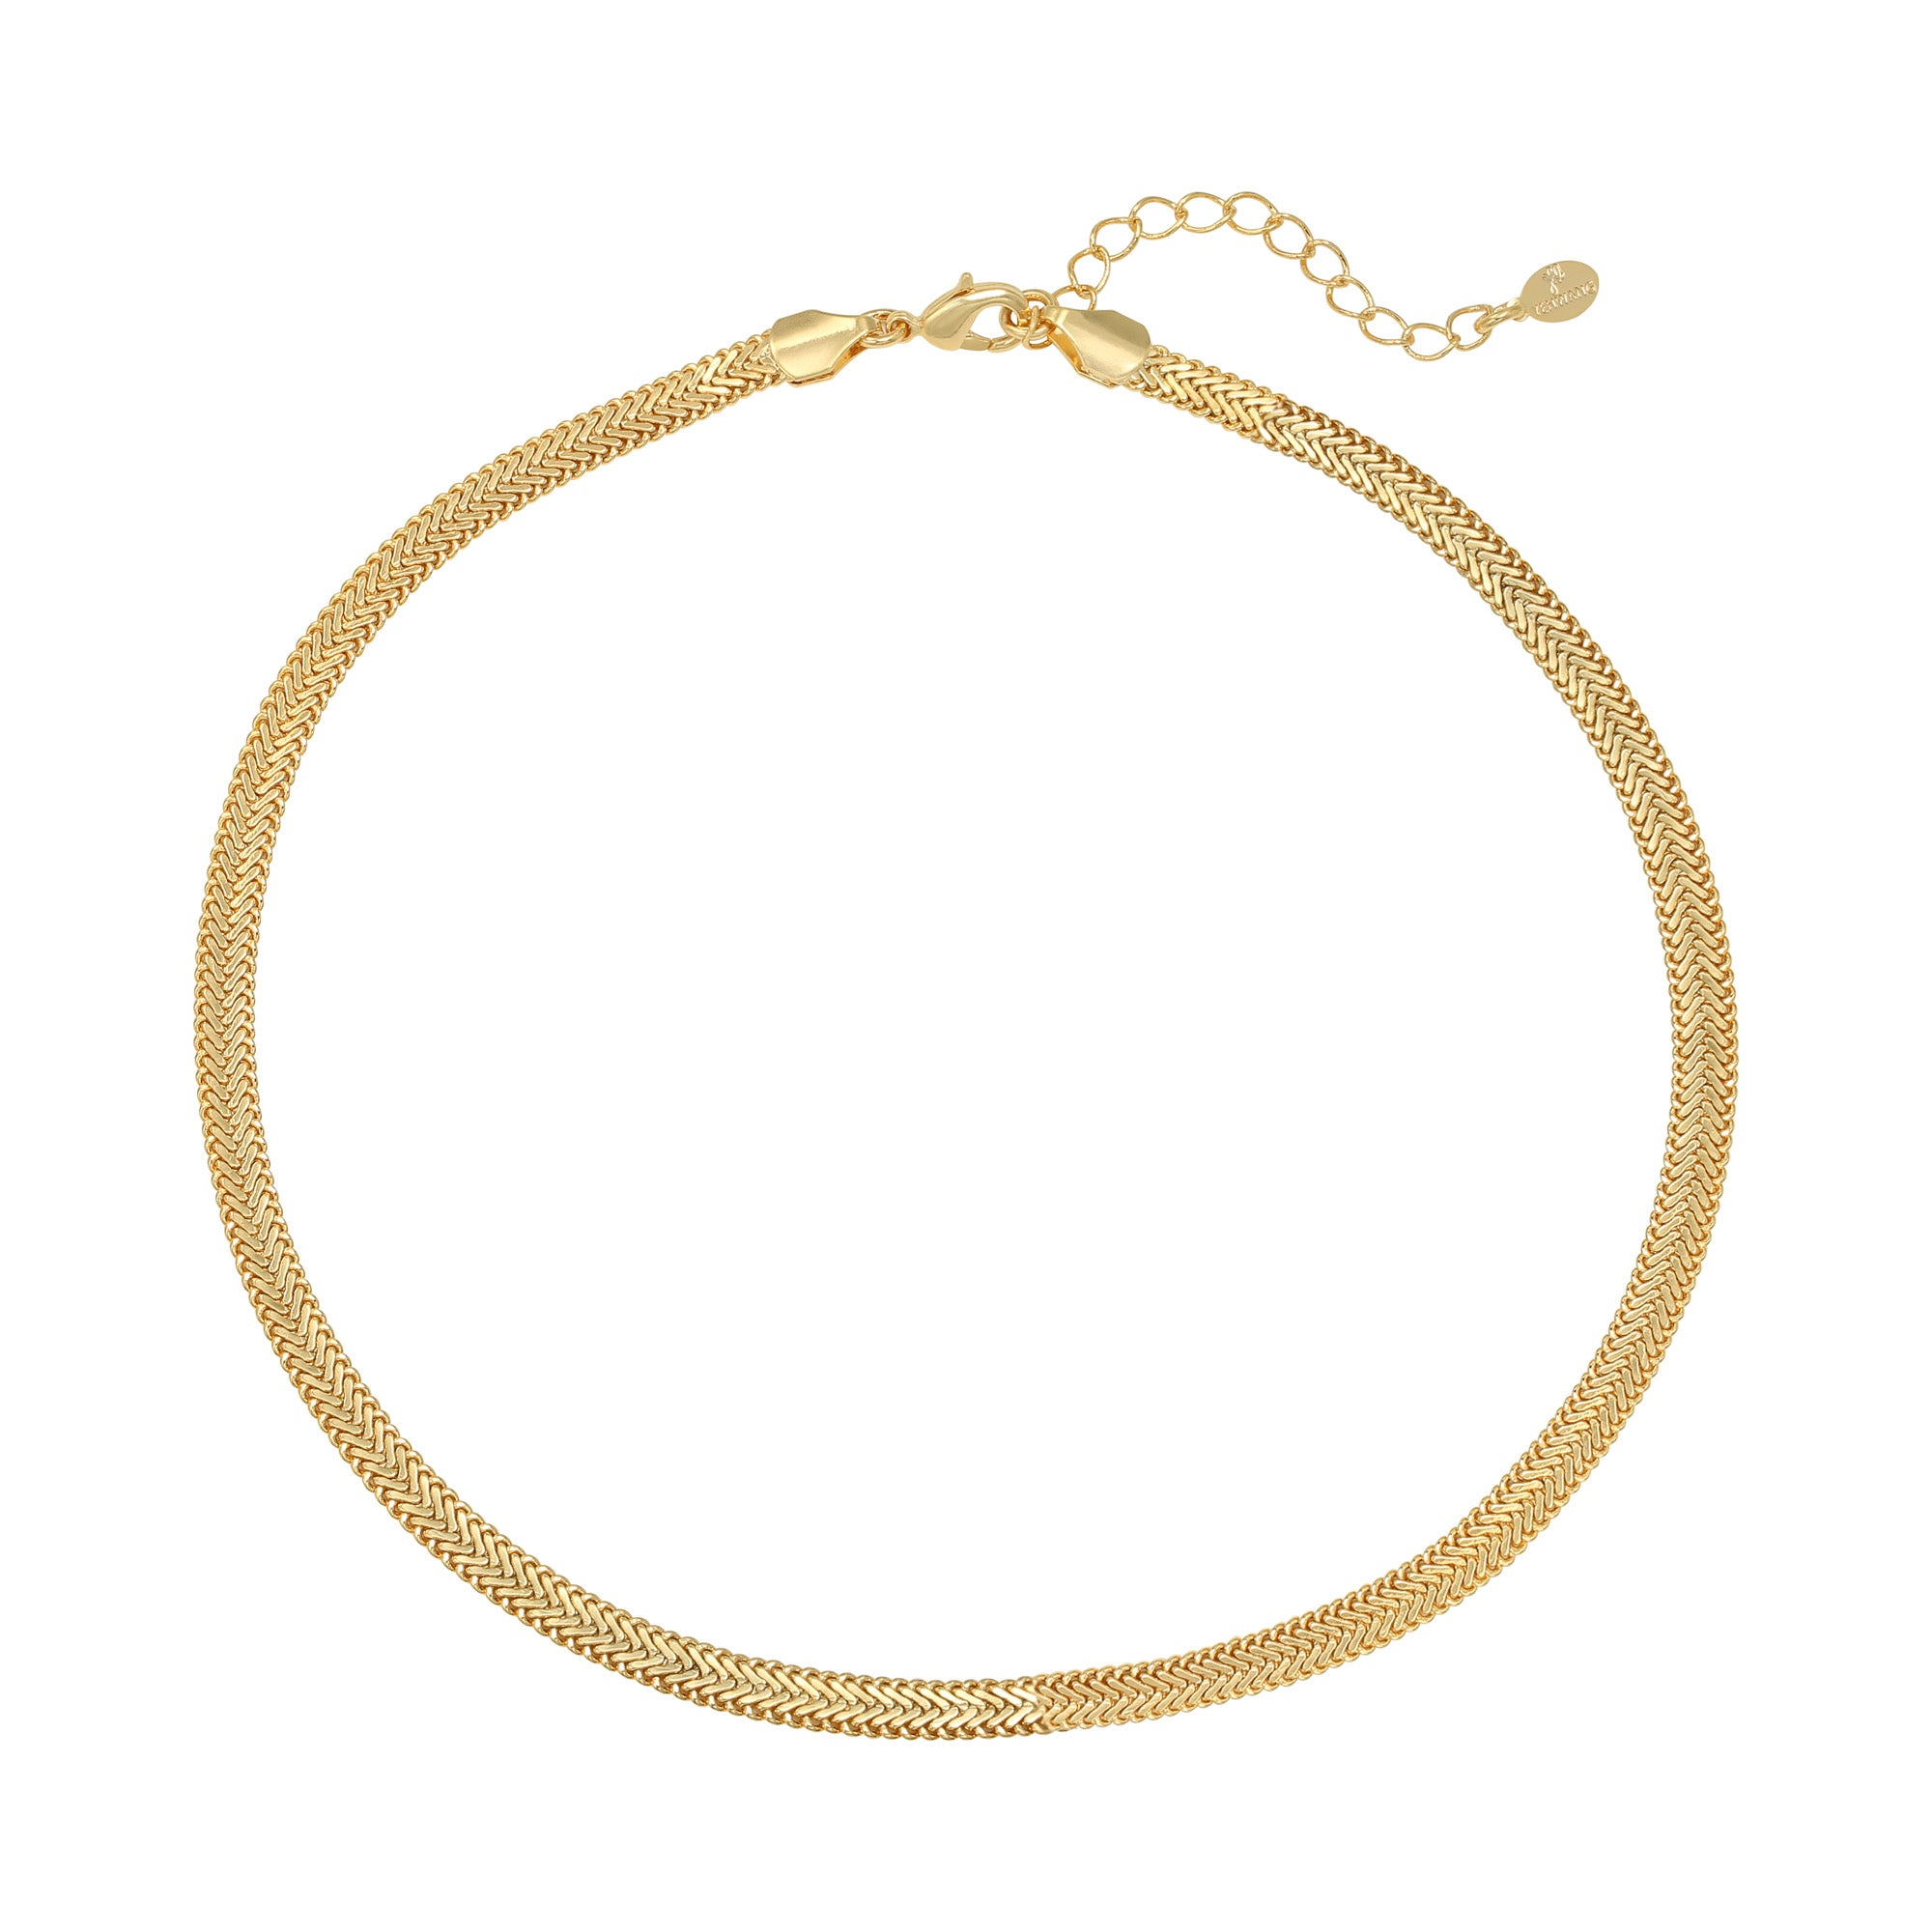 Snaky chain ketting goud